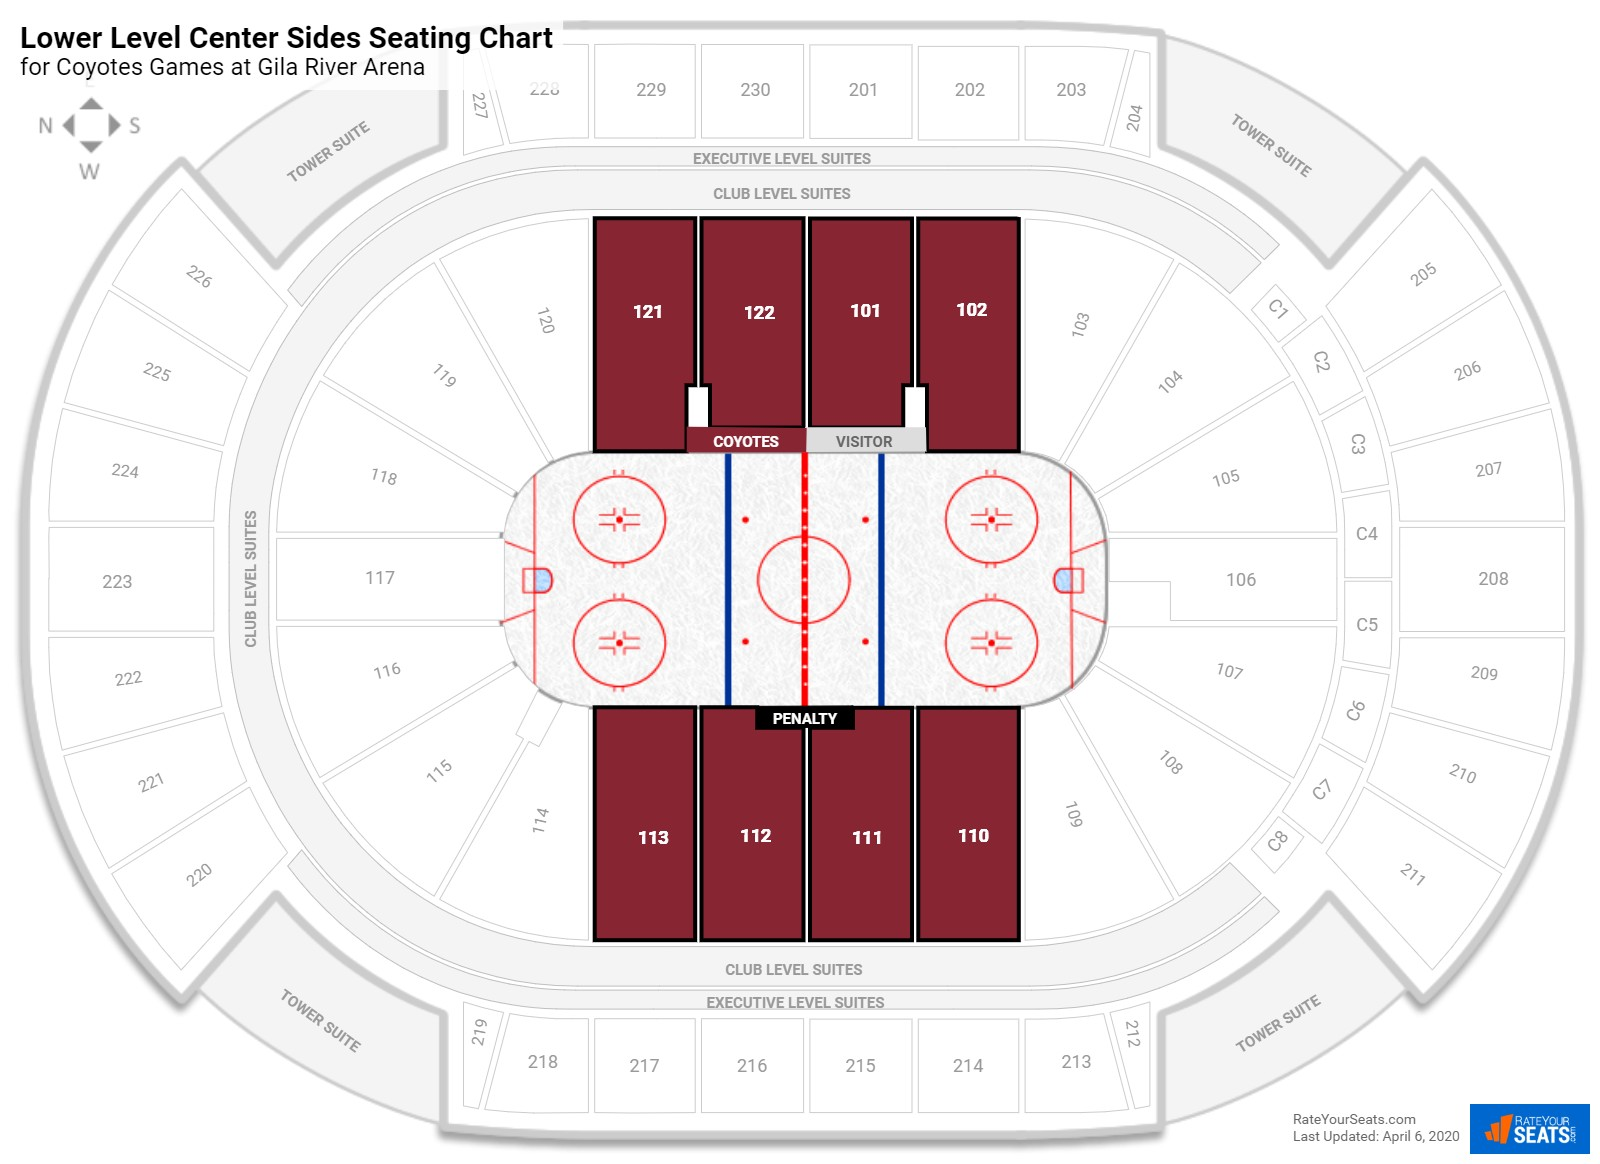 Gila River Arena Lower Level Center seating chart